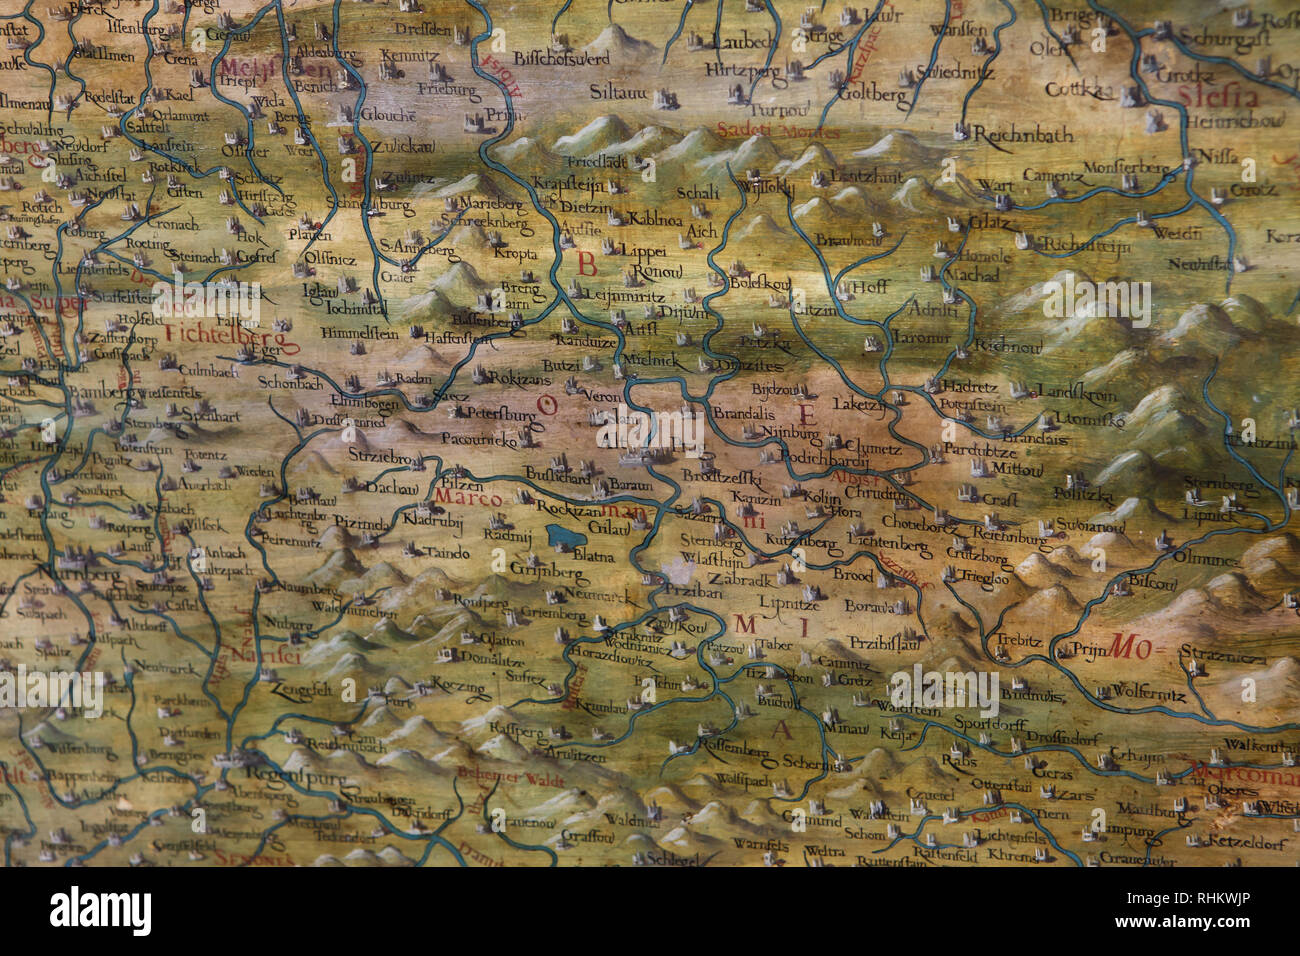 Geographical Map Of Germany.Map Of Bohemia And Germany Dated From 1564 1586 On Display In The